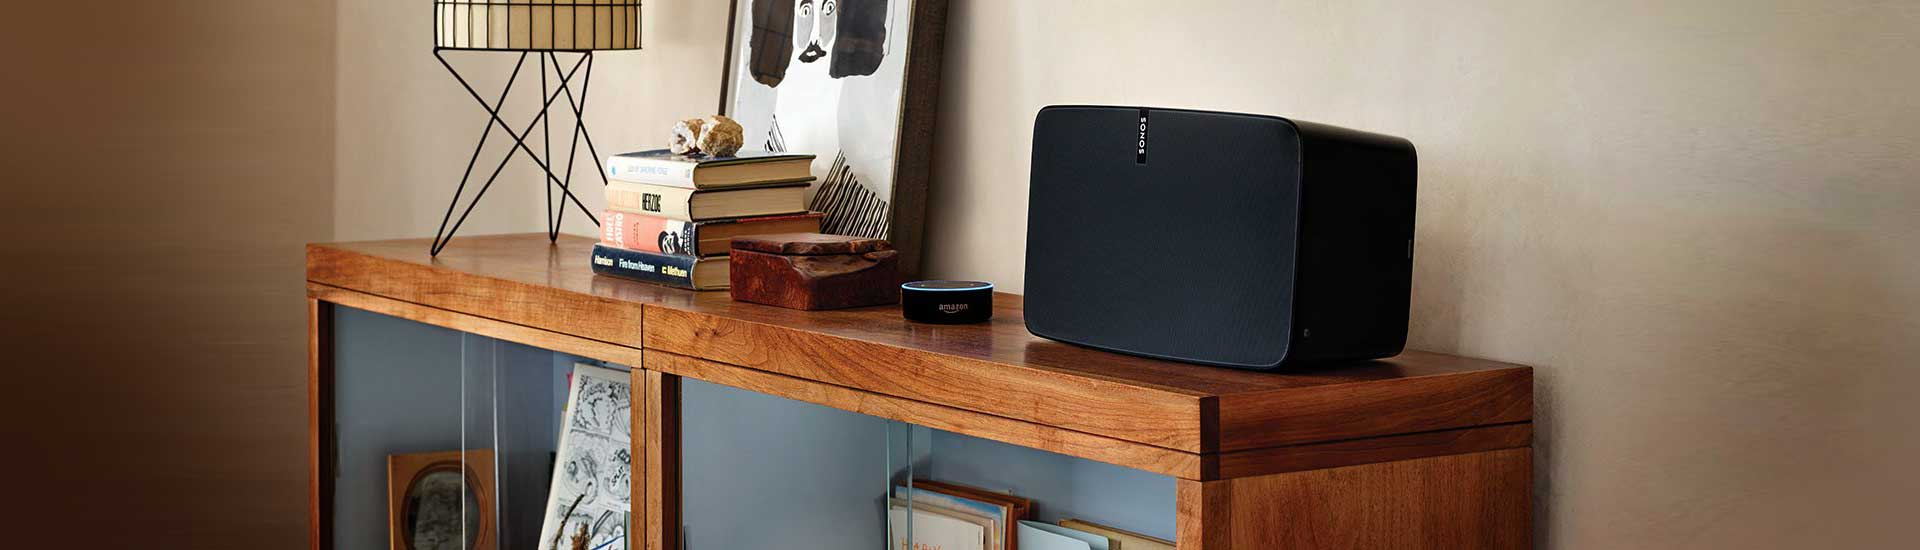 How to Connect Your Sonos Speaker to Alexa